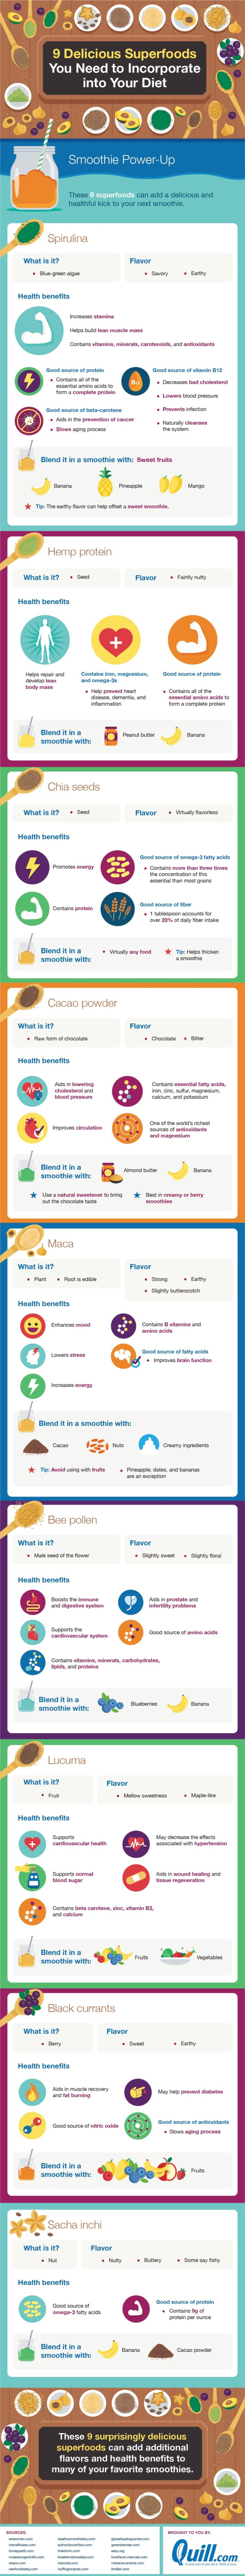 [INFOGRAPHIC] Superfoods for power packed breakfast smoothies